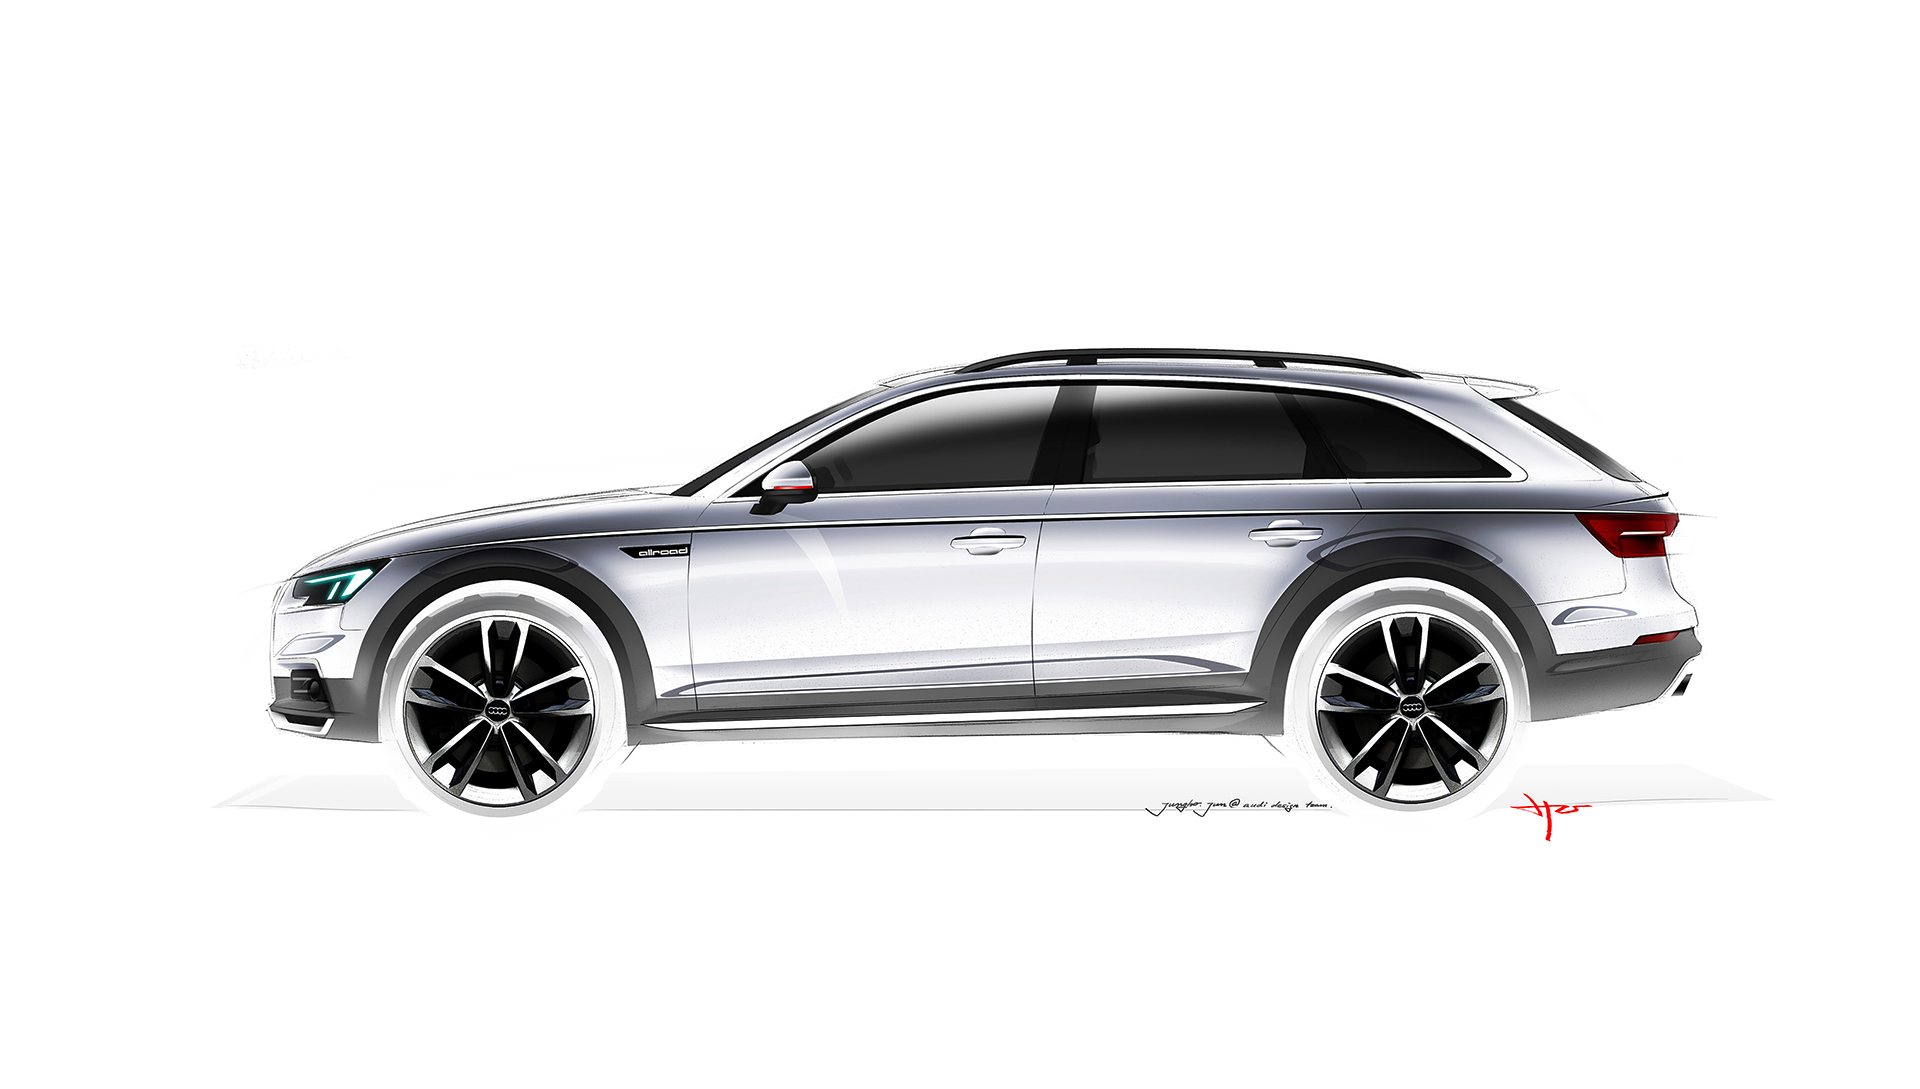 Audi A4 allroad quattro - 2016 - sketch - profil / side-face